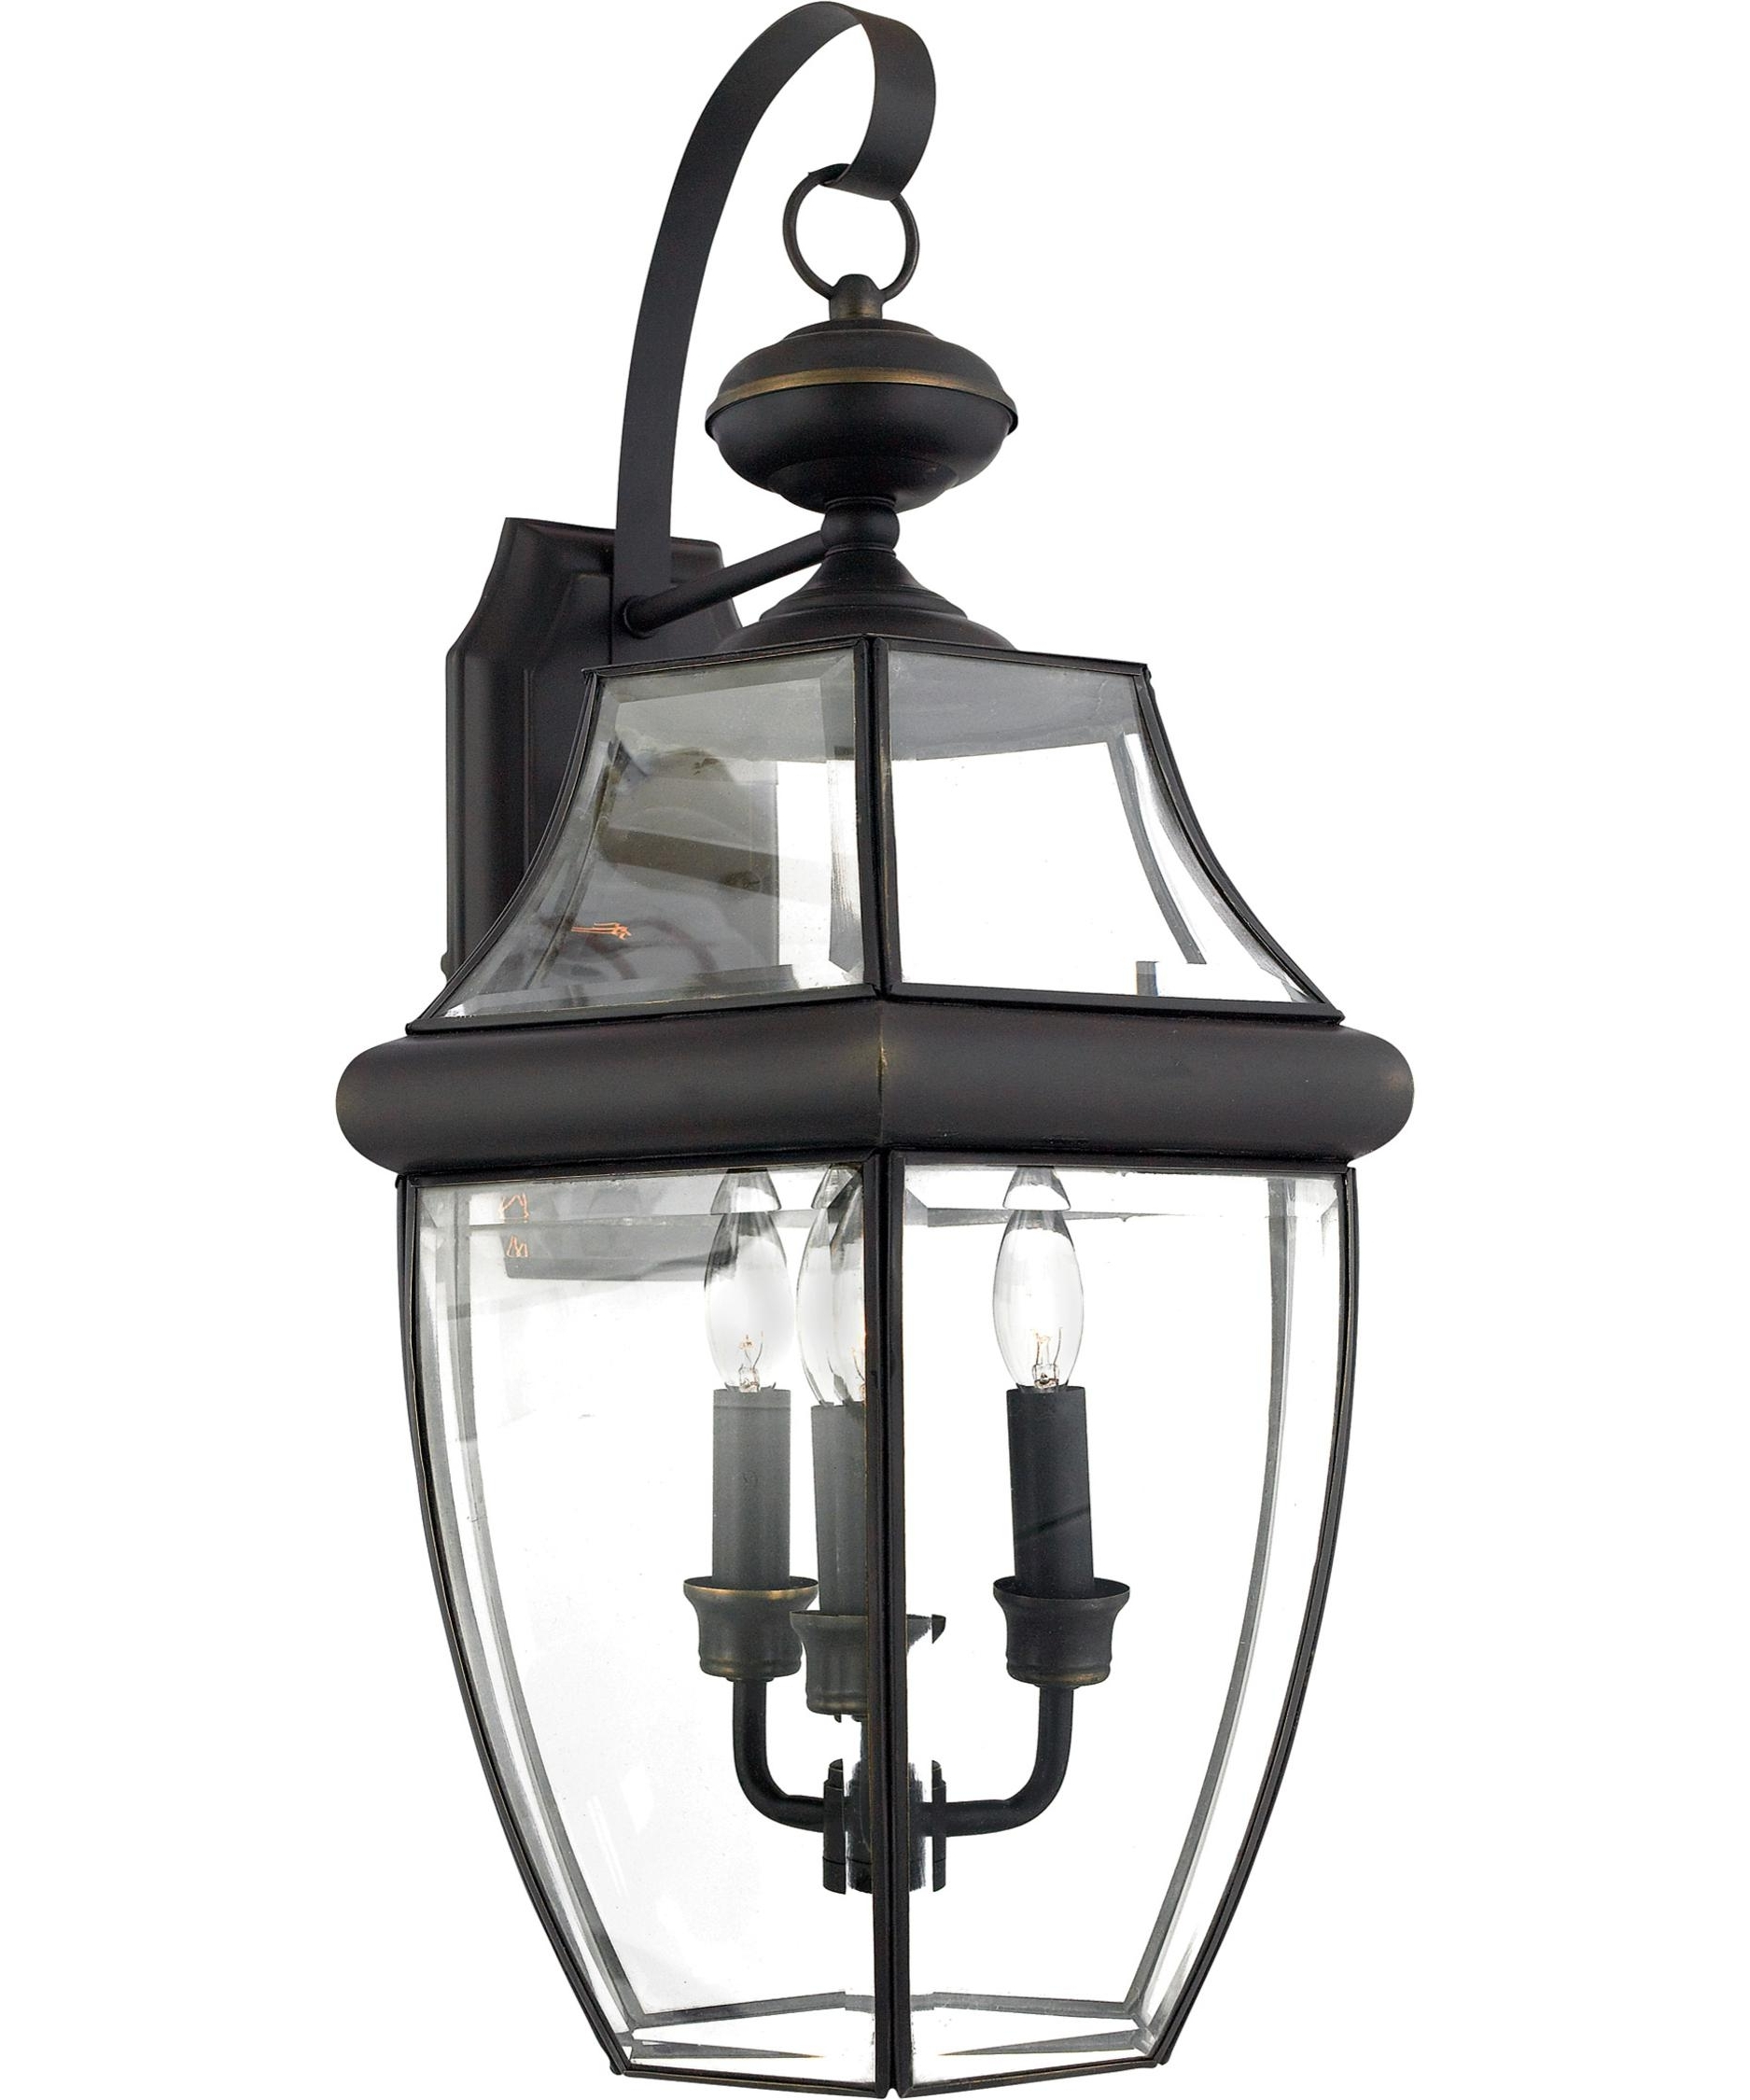 Favorite Quoizel Outdoor Lanterns Inside Quoizel Ny8318 Newbury 13 Inch Wide 3 Light Outdoor Wall Light (View 3 of 20)